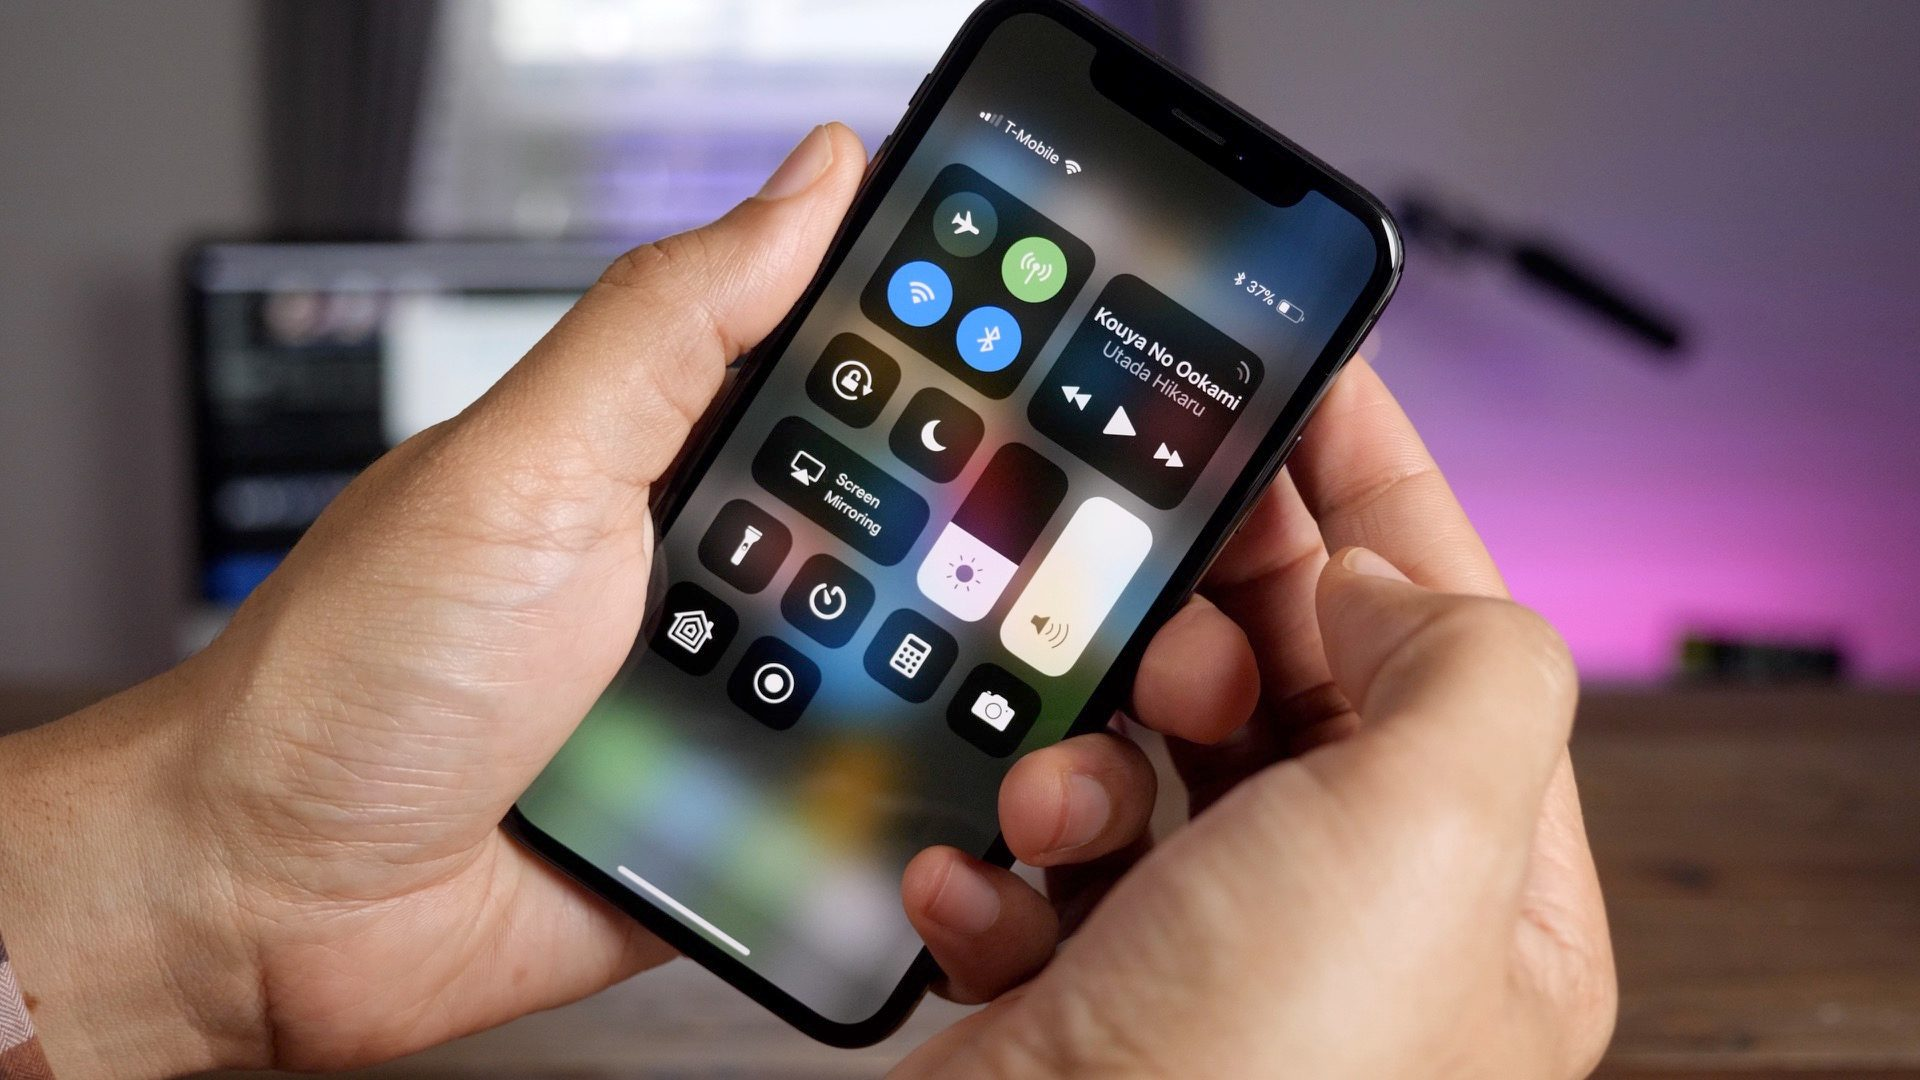 What and how to replace the control gestures in the iPhone X interface